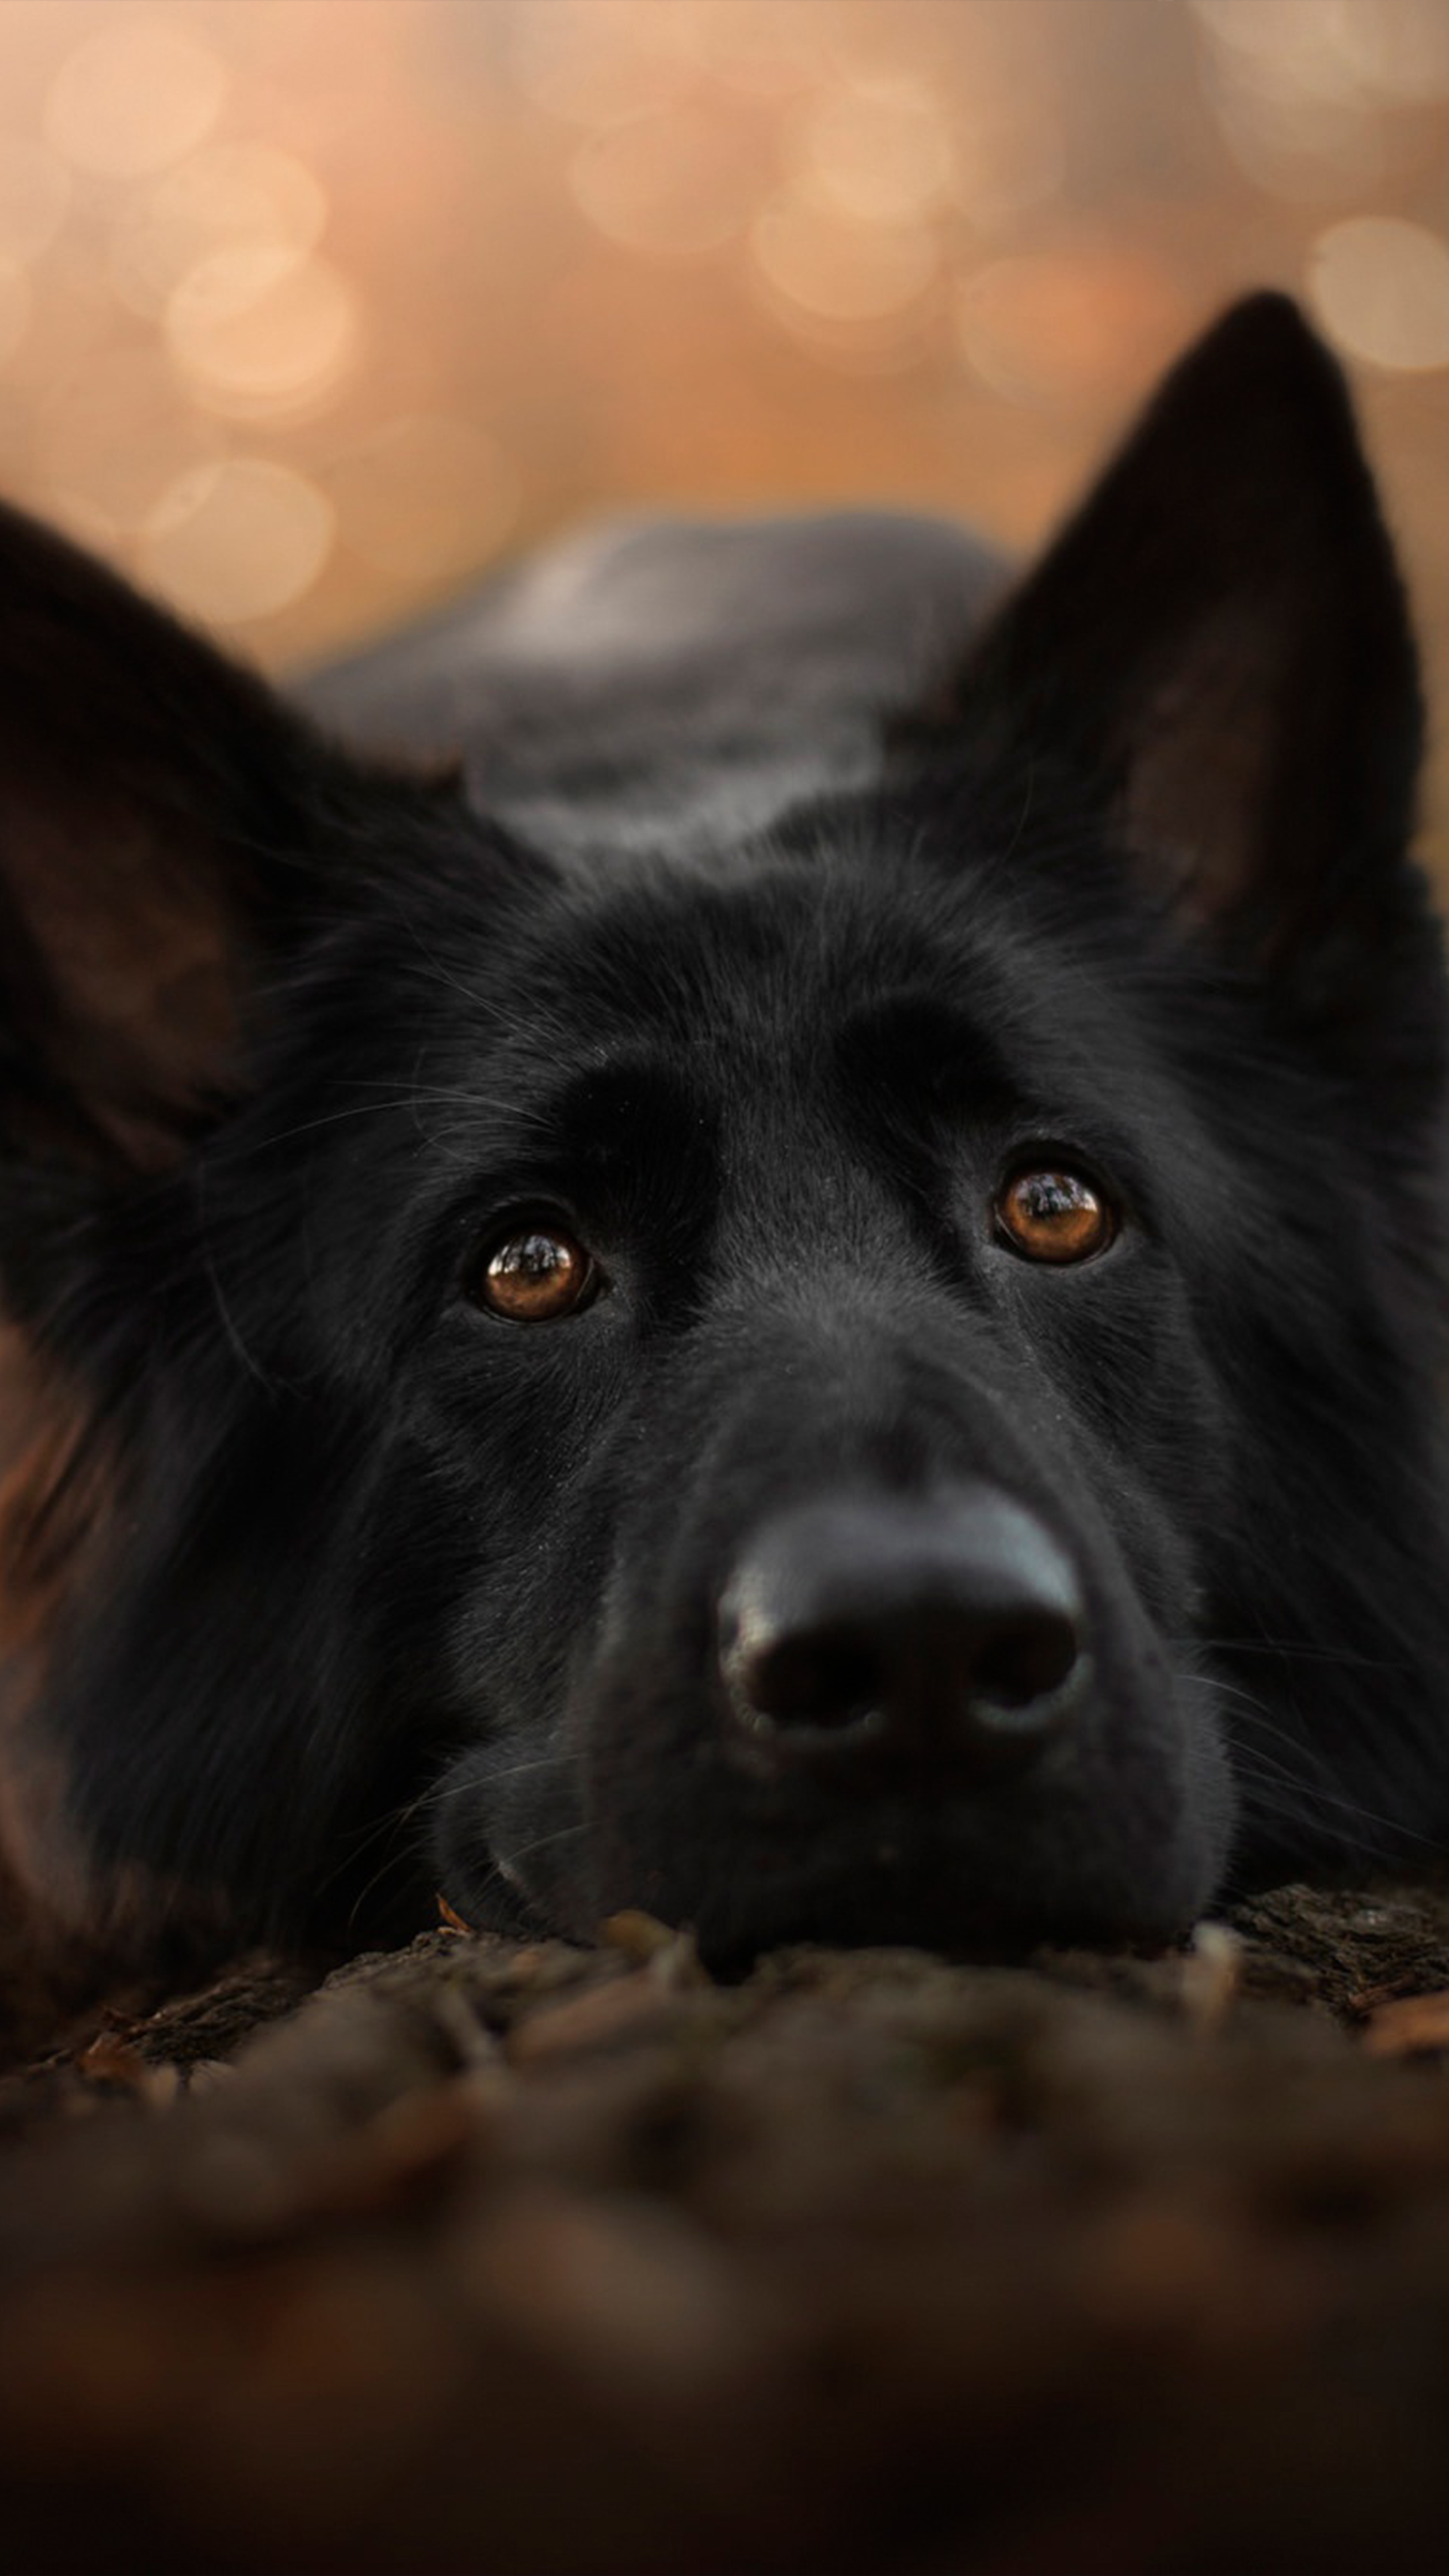 German Shepherd Black Pet Dog 4k Ultra Hd Mobile Wallpaper